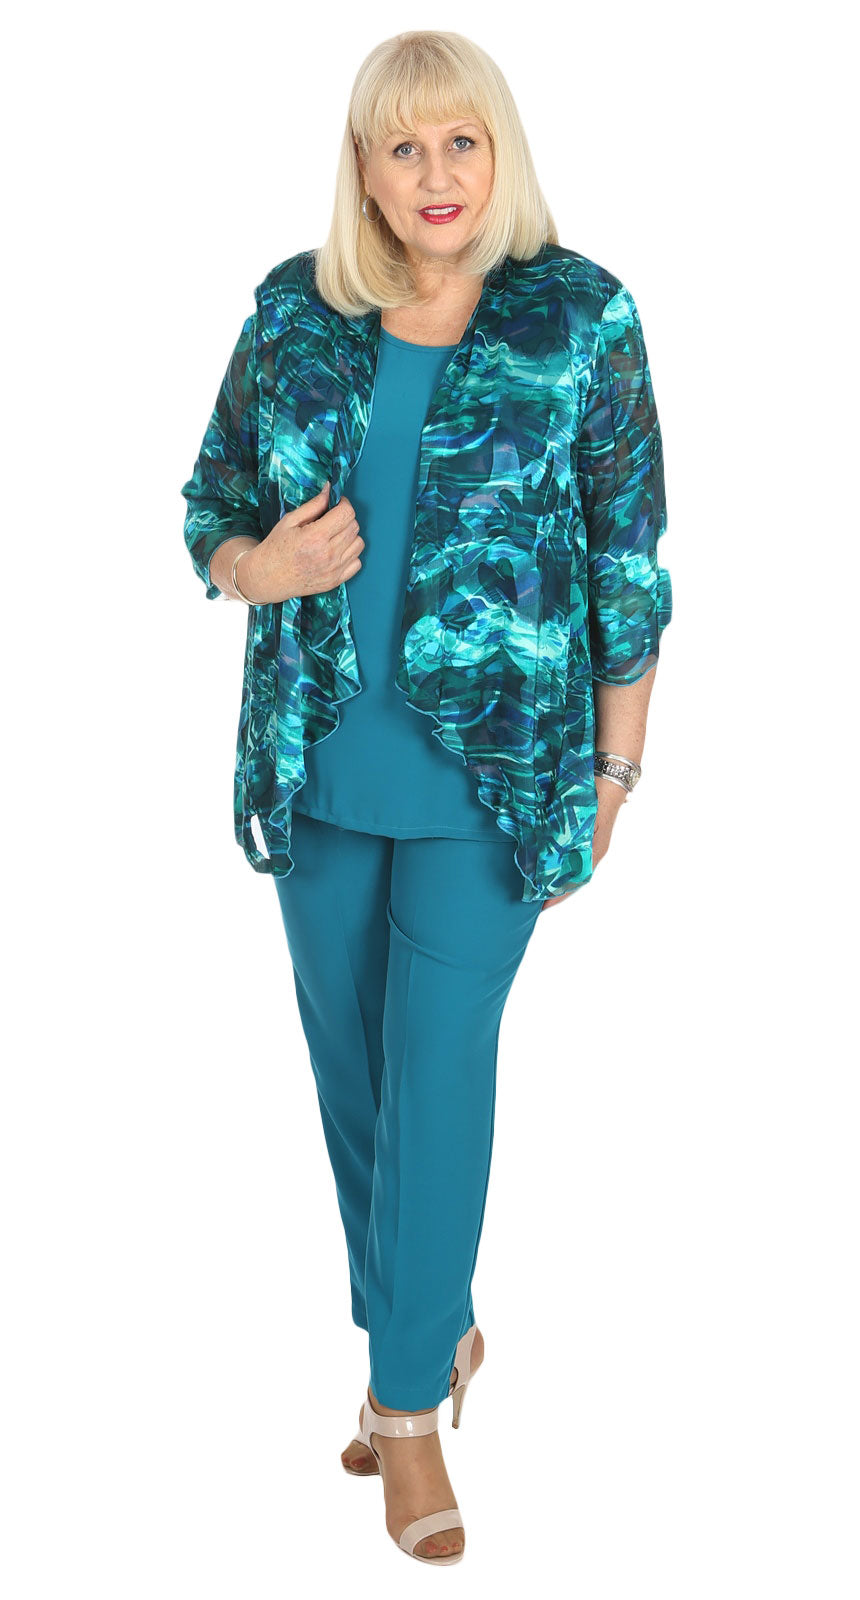 Sybil's Crepe Pant Teal